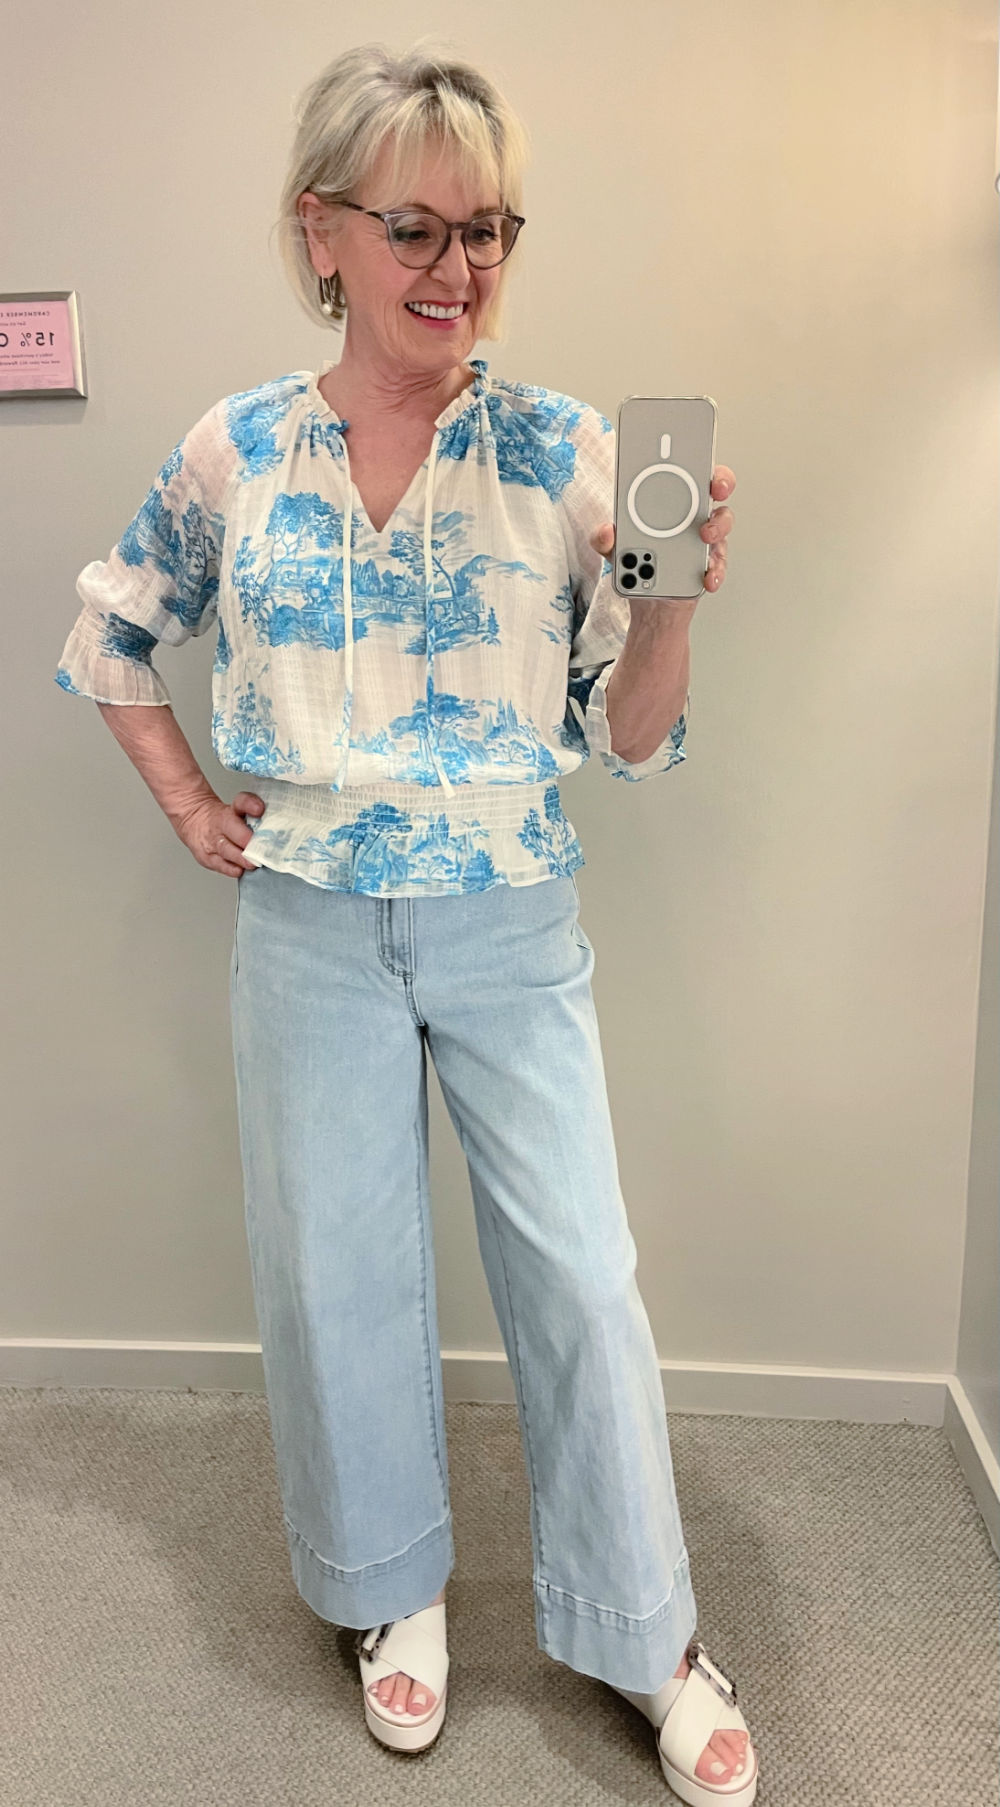 blonde woman taking dressing room selfie in toile blouse and jeans at ann taylor